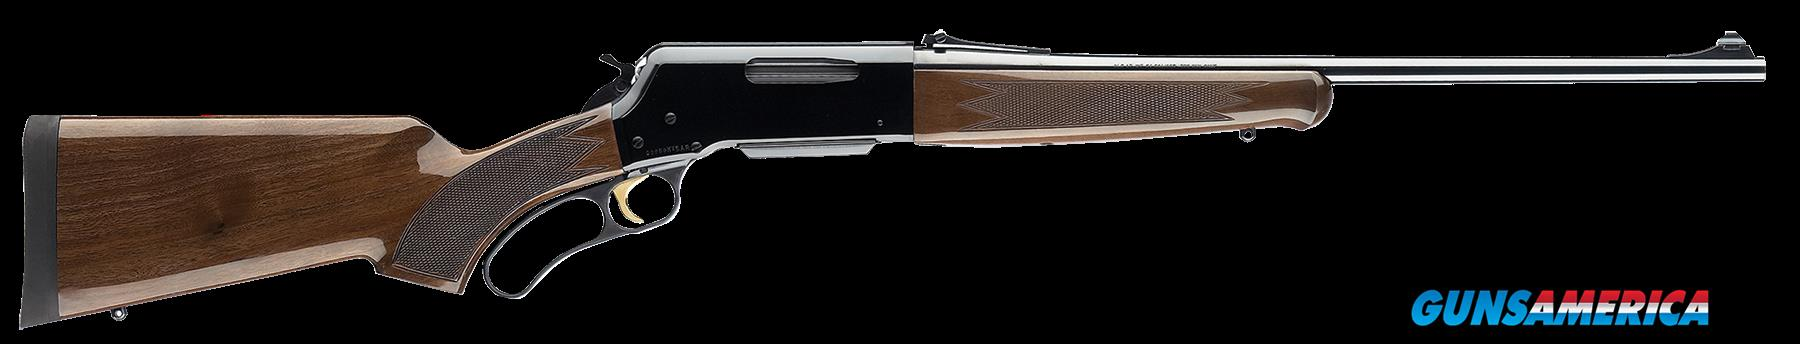 "Browning 034009150 BLR Lightweight with Pistol Grip Lever 450 Marlin 20"" 3+1 Walnut Stock Blued  Guns > Rifles > Browning Rifles > Lever Action"